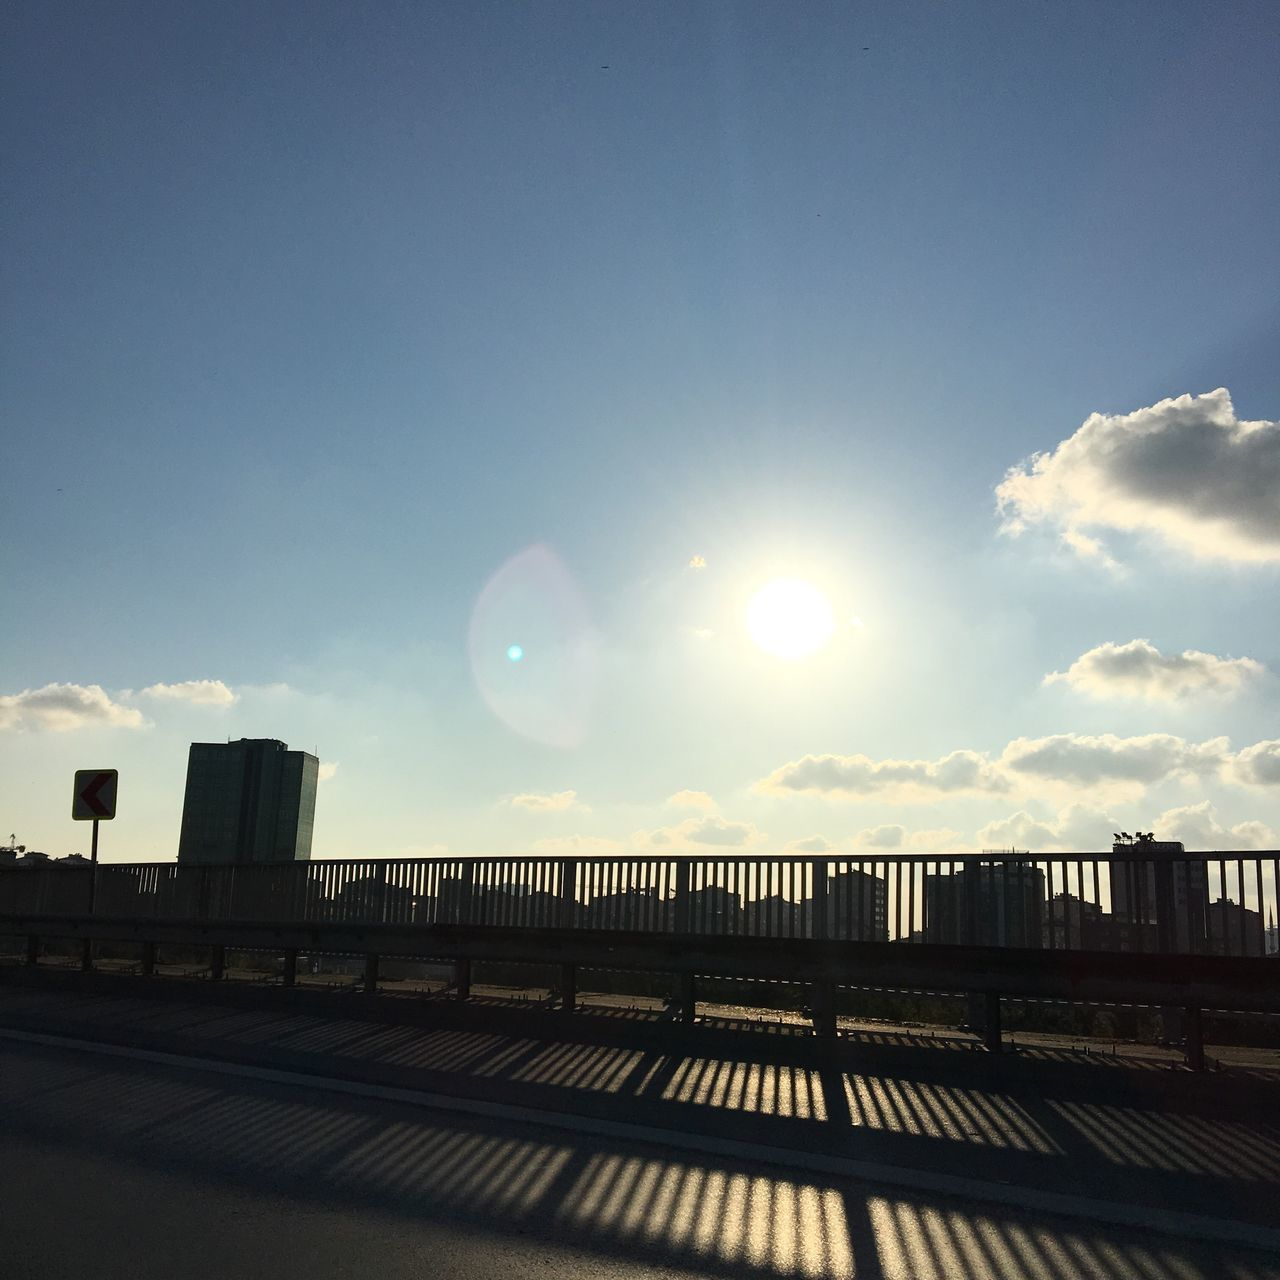 sunlight, railing, sky, sun, sunset, outdoors, day, no people, built structure, architecture, nature